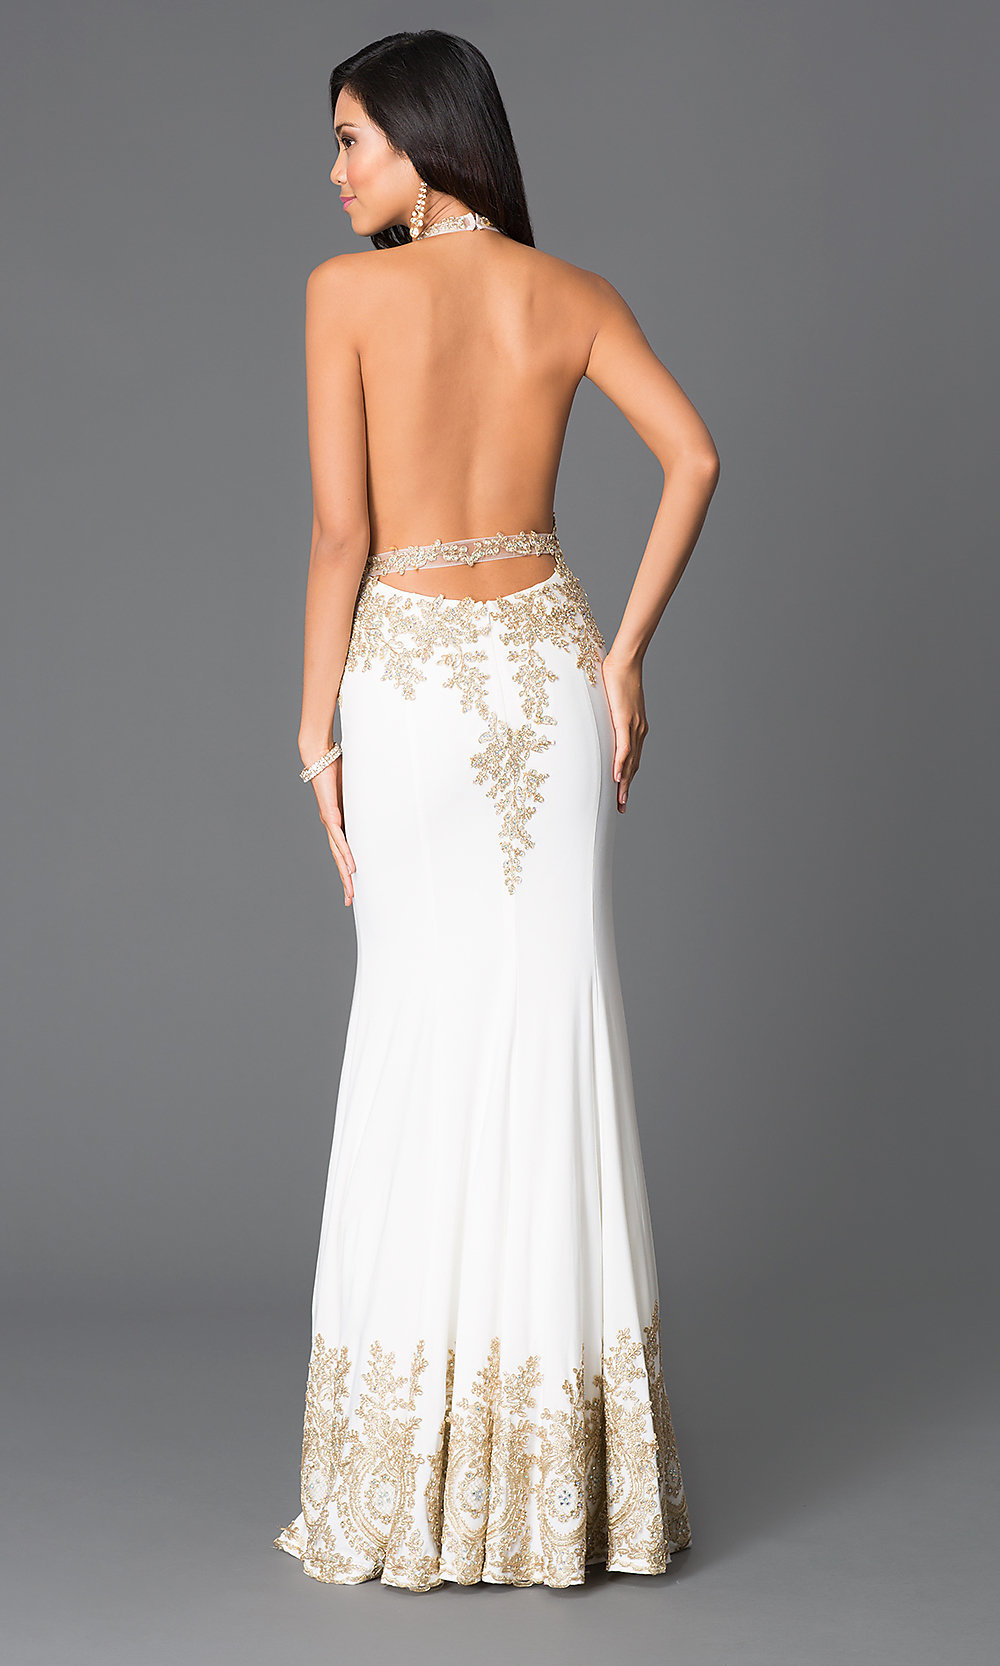 V-Neck Halter-Top Open-Back Dress - PromGirl